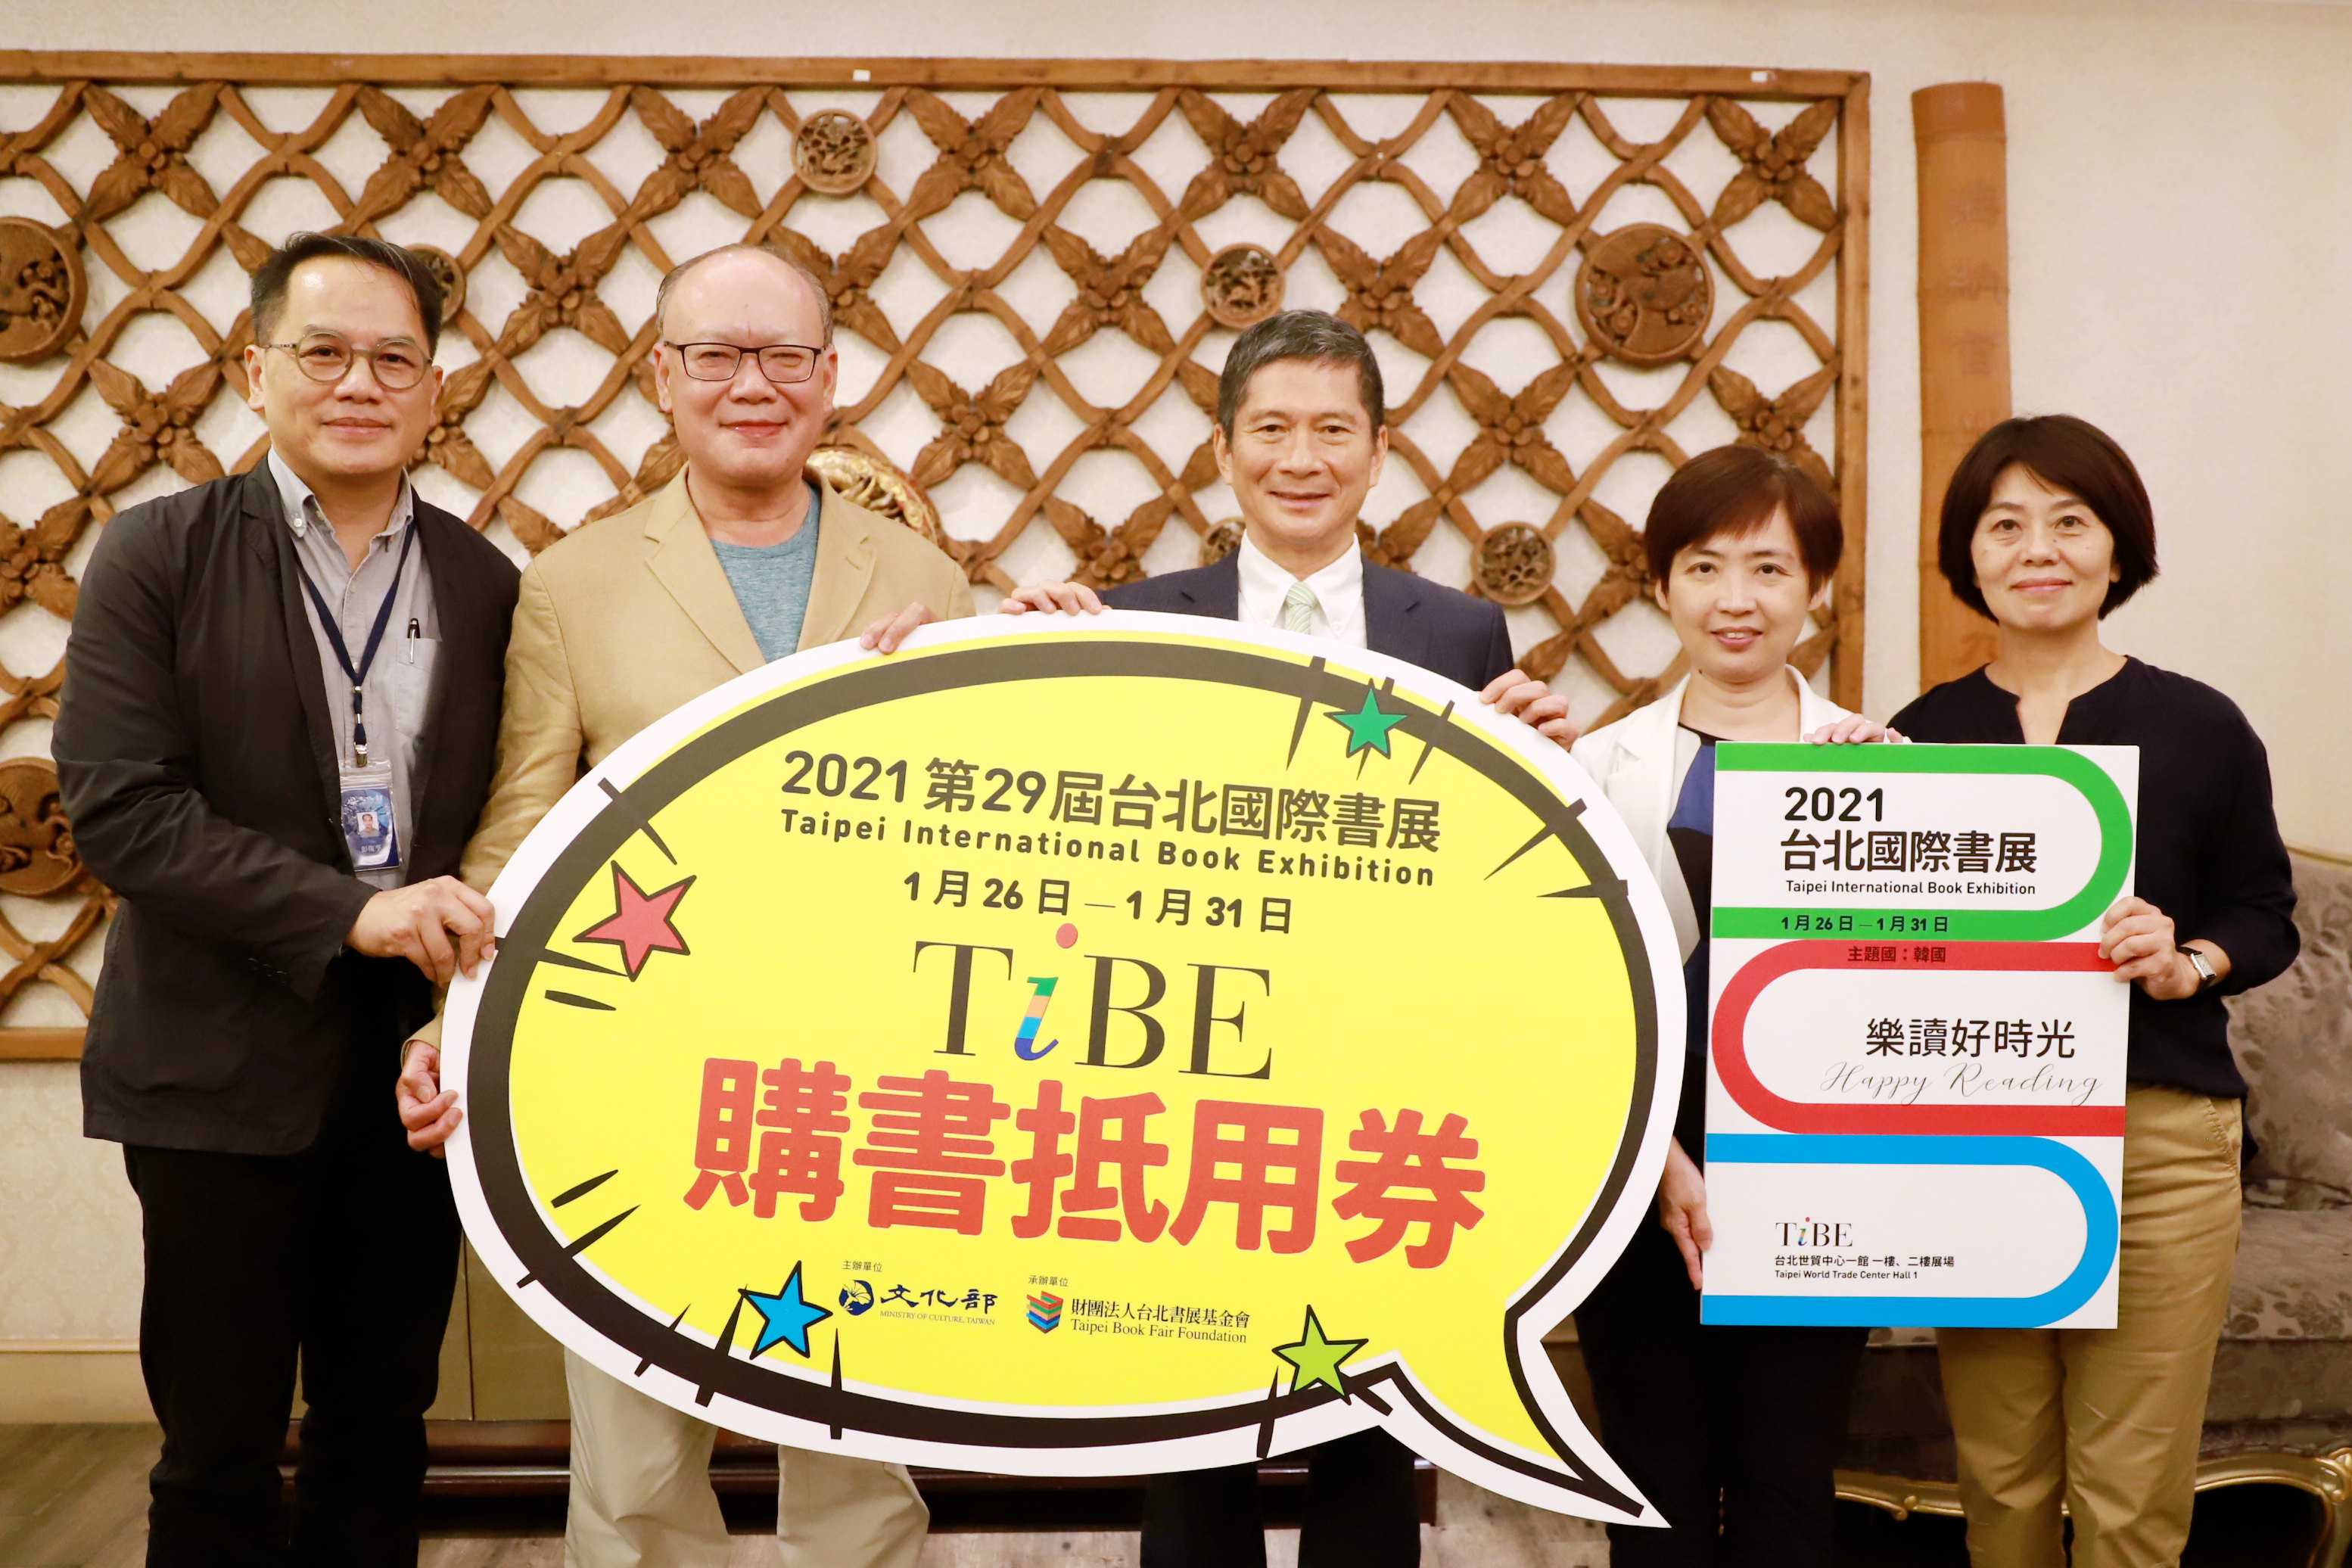 Ministry of Culture to issue book vouchers during 2021 Taipei International Book Exhibition